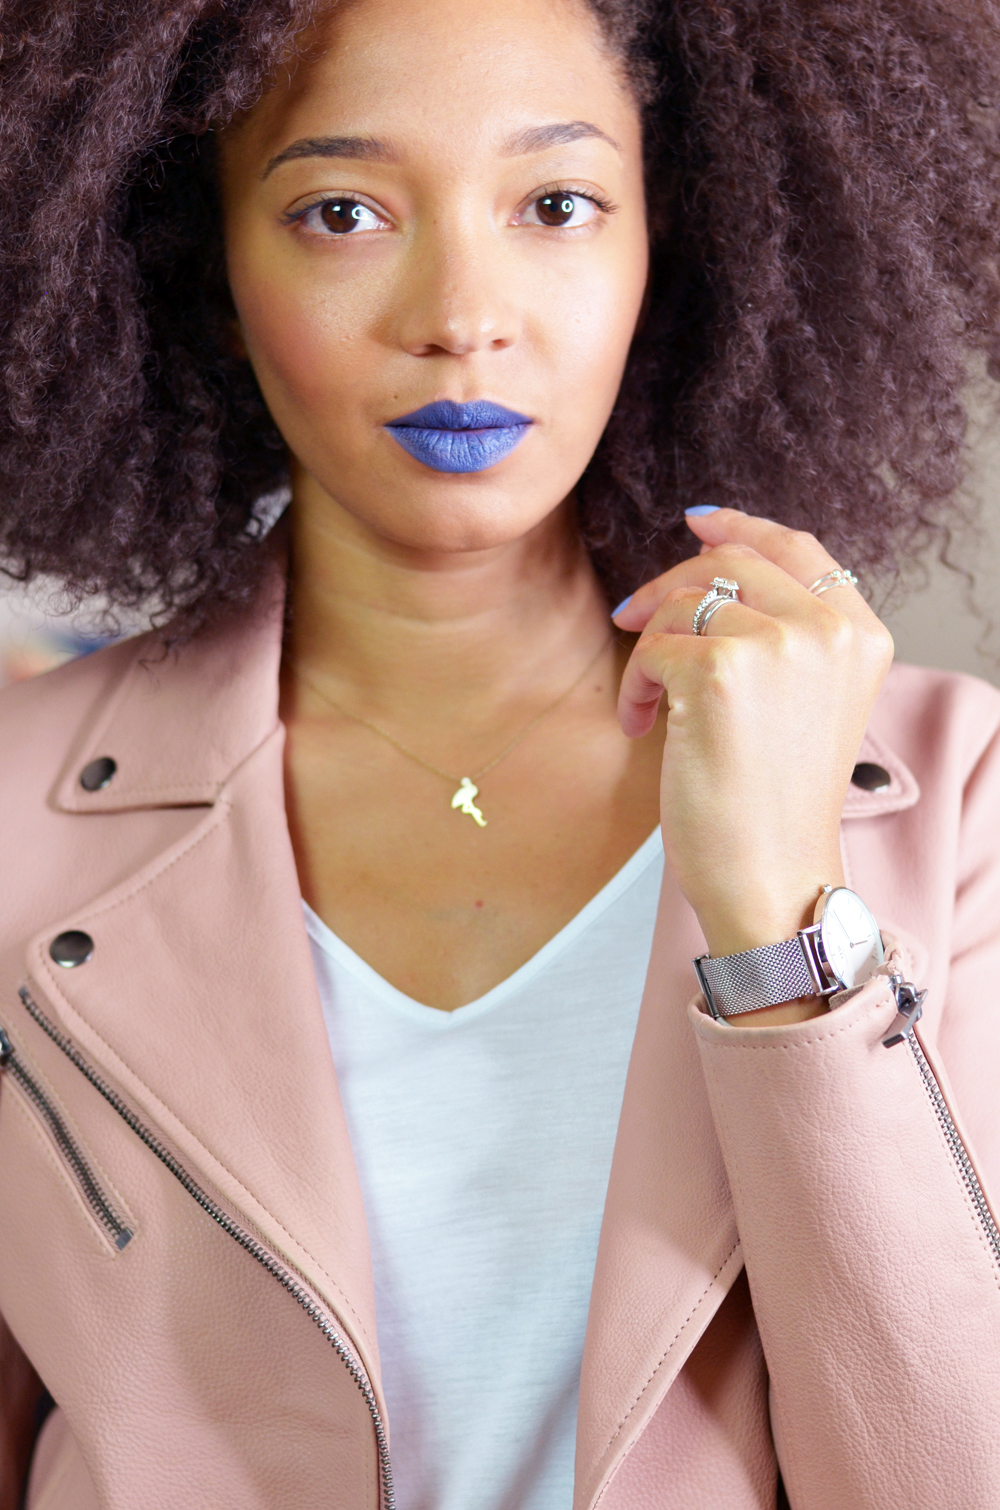 mercredie-blog-mode-suisse-bloggeuse-lacewig-big-beautiful-hair-outre-outfit-nude-leather-perfecto-rose-Indigo-Go-mac-matte-lipstick-blue-daniel-wellington